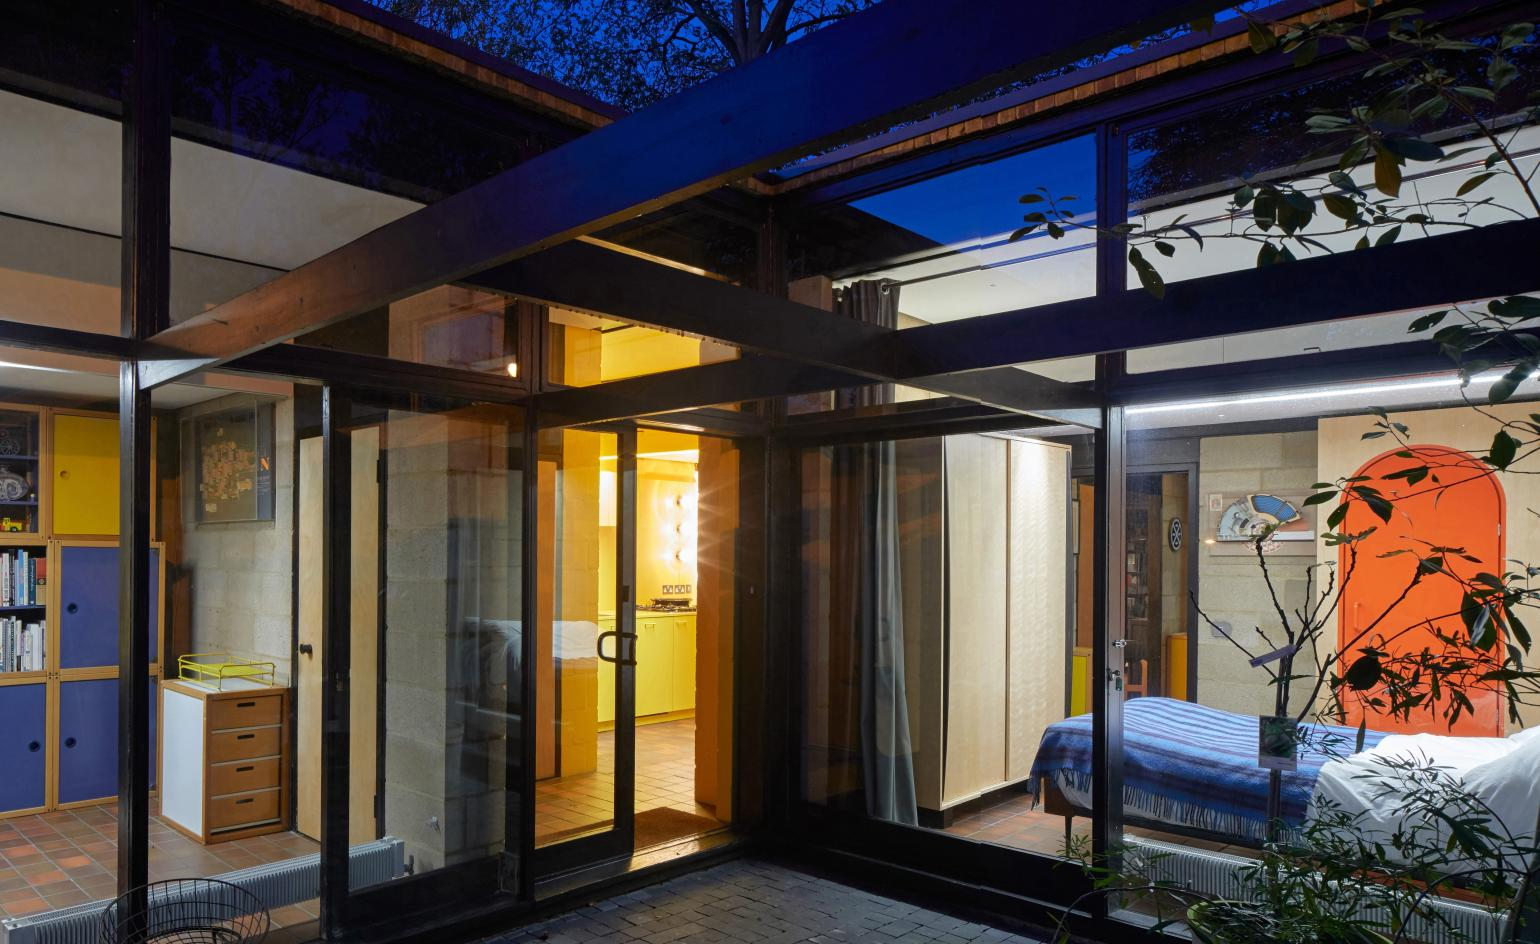 Tour designer Jason Maclean's redesigned modernist home in South London